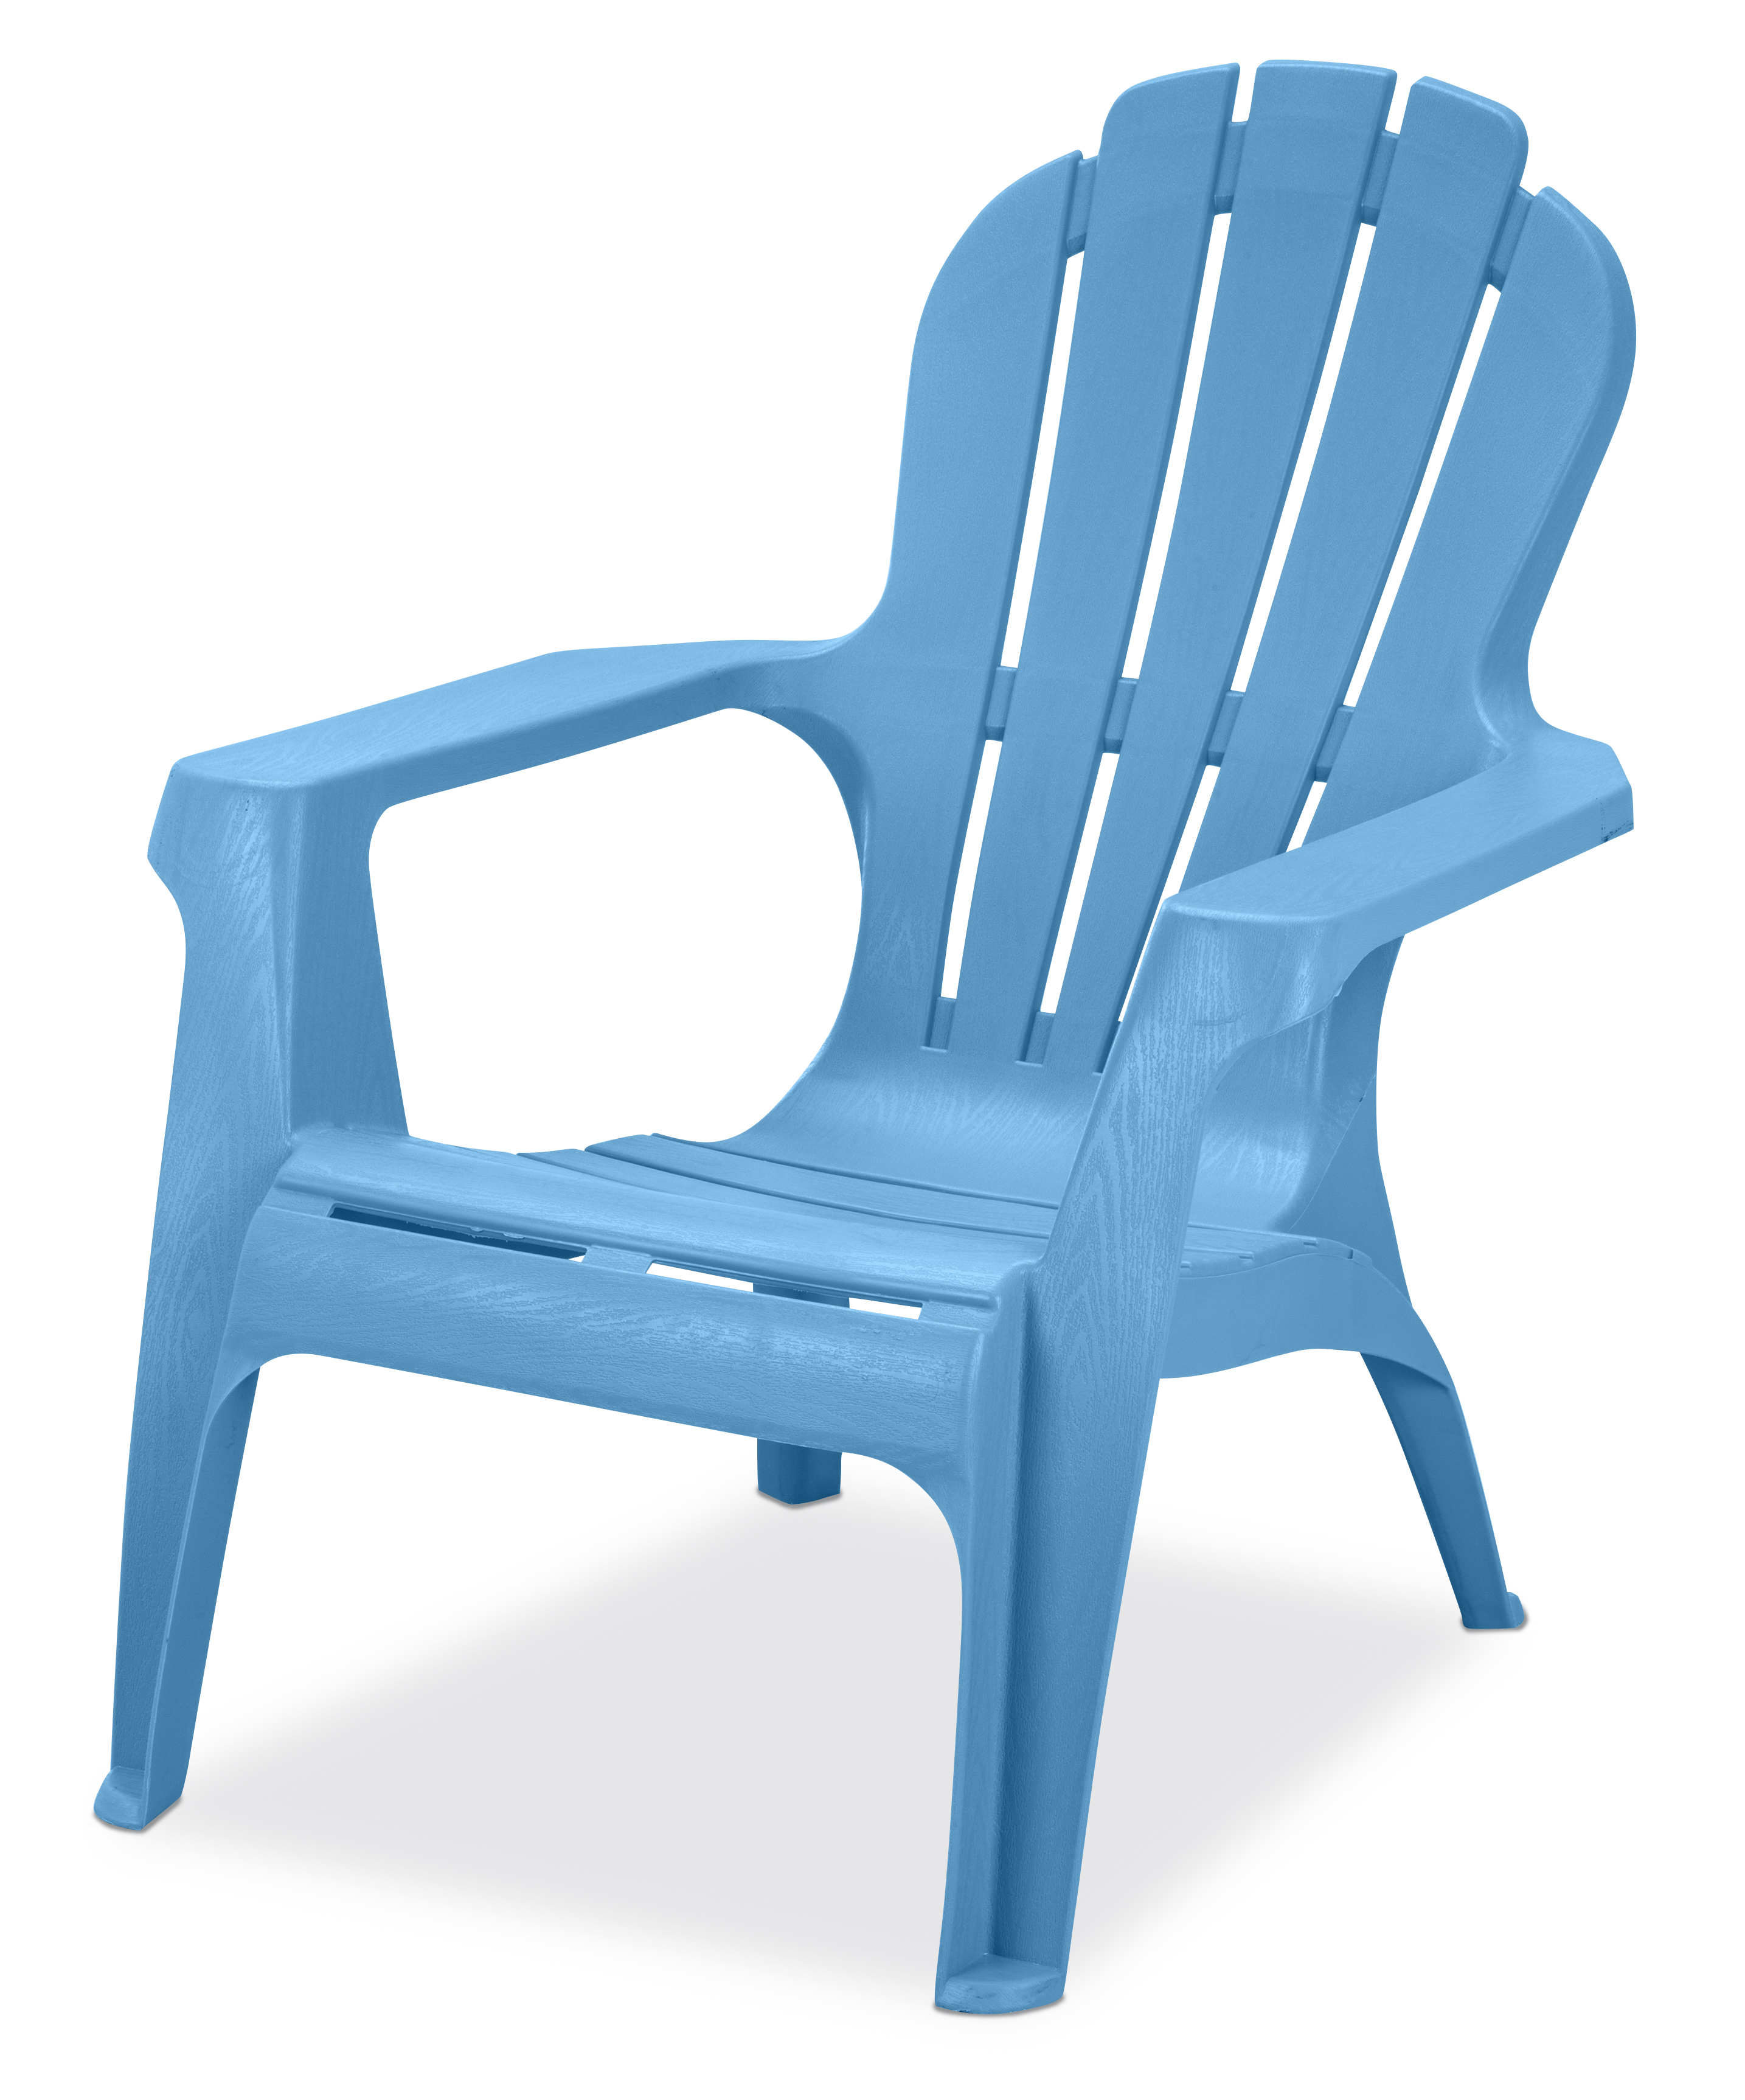 US Leisure Resin Adirondack Chair   Plastic Patio Furniture, Blue